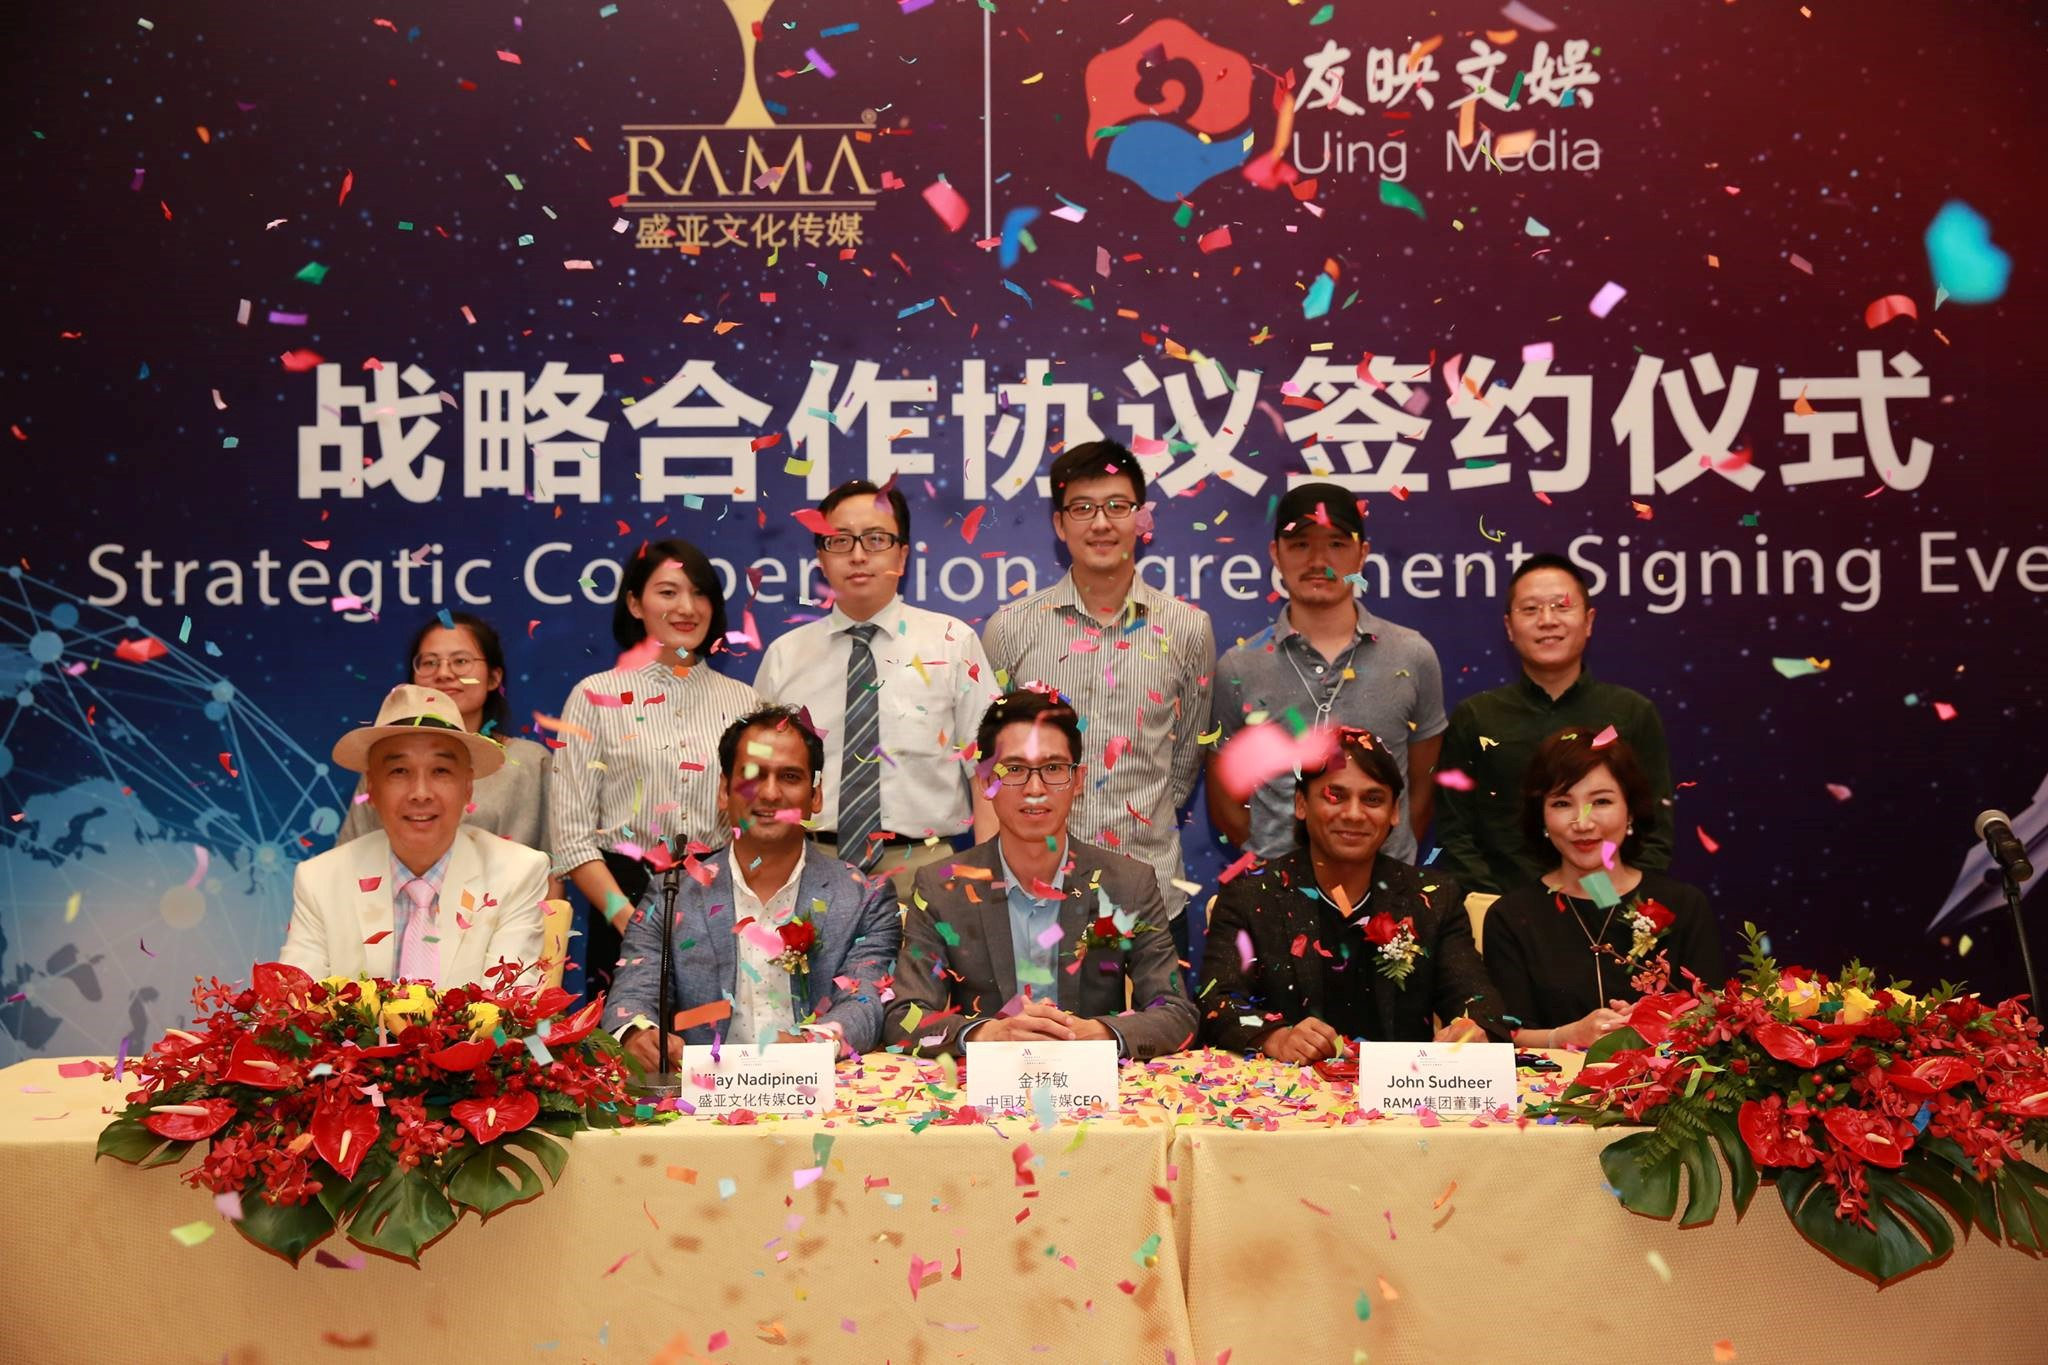 RAMA China signs MOU with Uing Holdings China